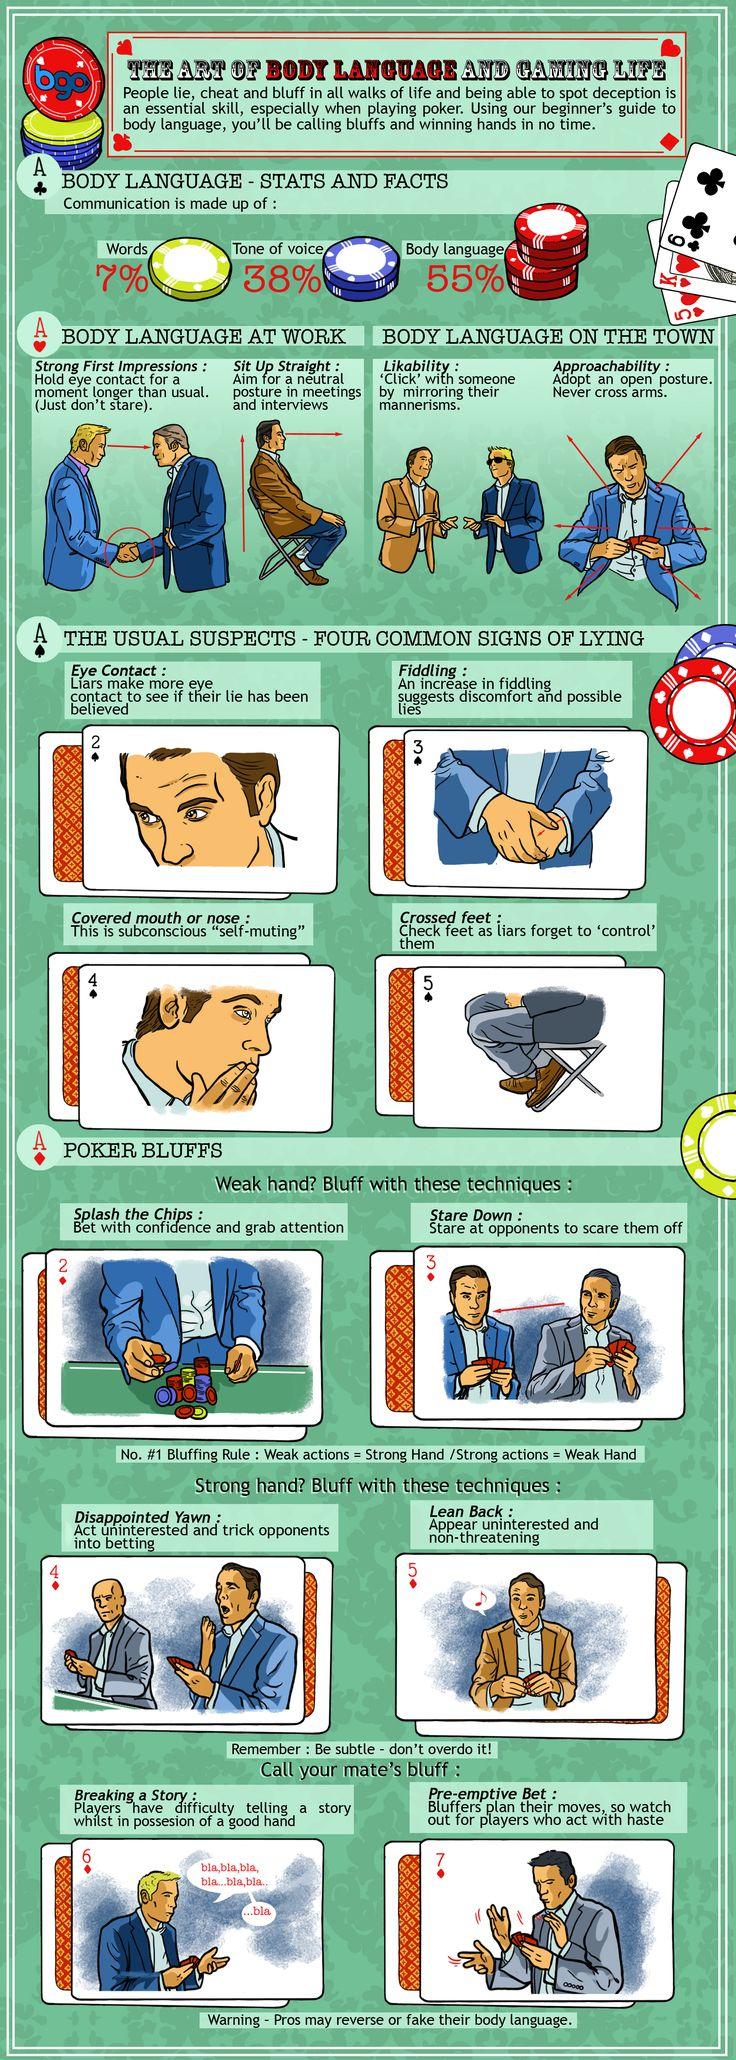 reading body language in poker Body language for poker players: spotting tells it's one of the  most  once you are confident in your ability to read one player, start studying.